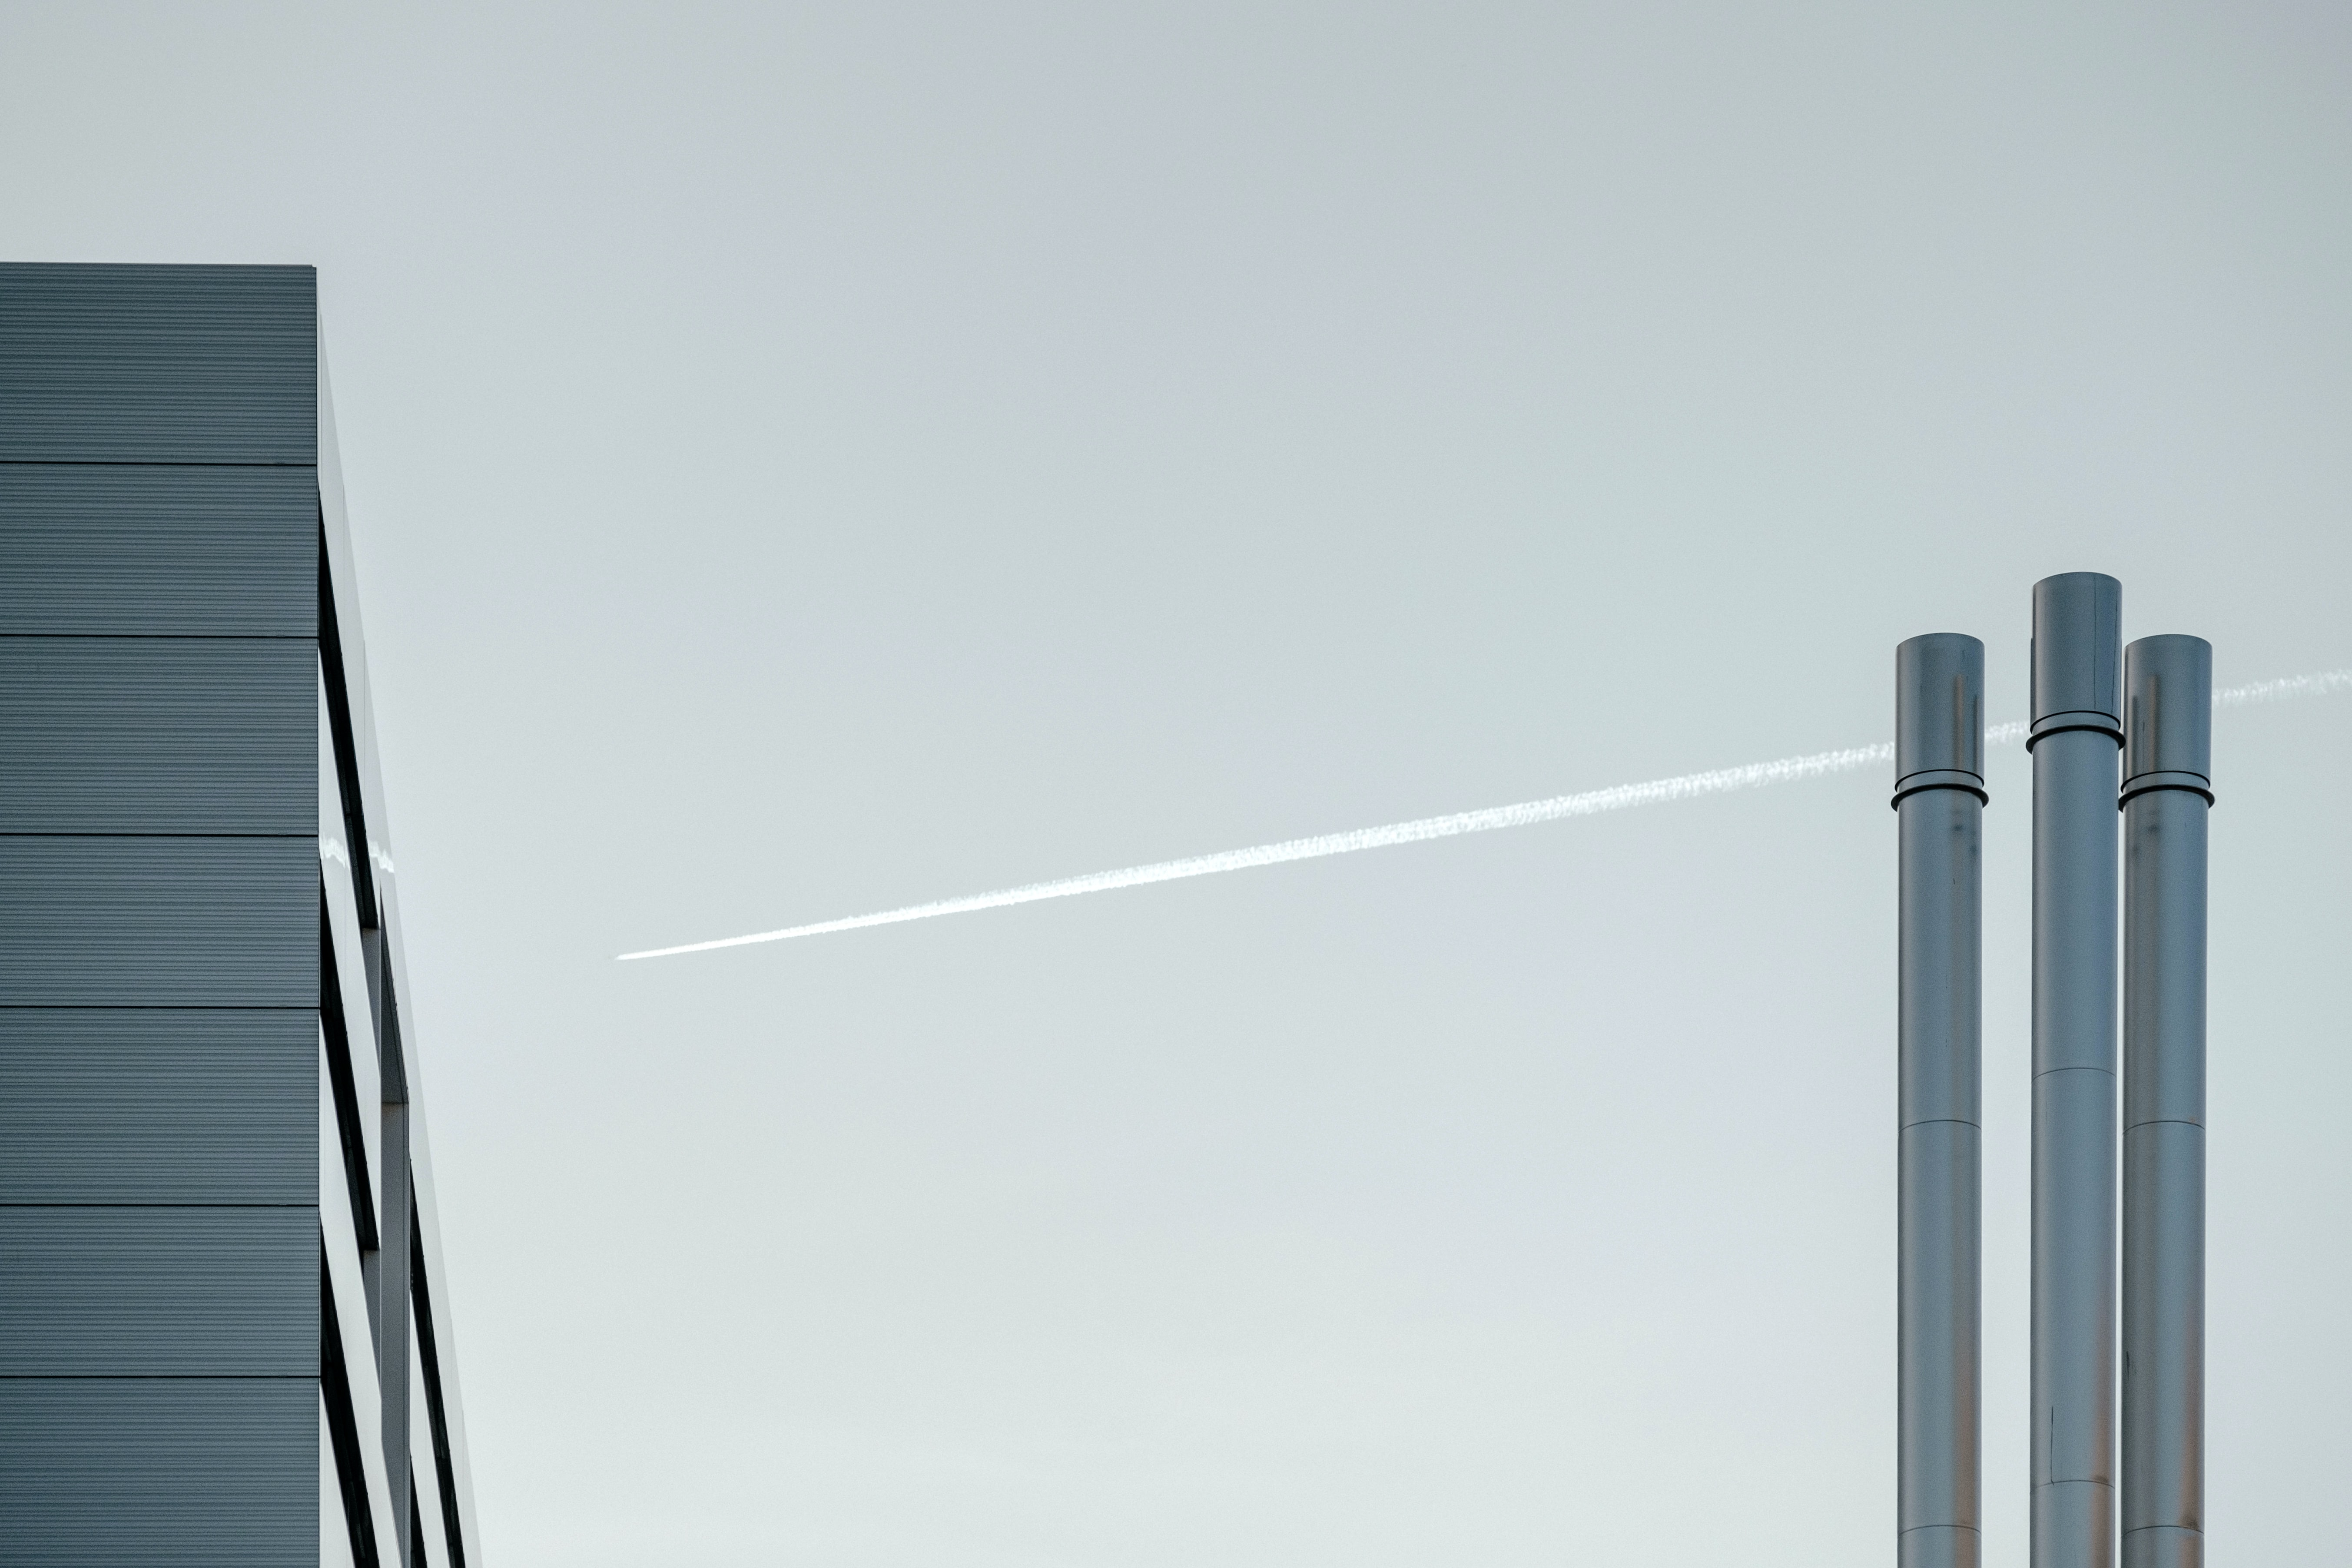 A plane with contrail is flying over an industrial building with chimneys in Geneva.